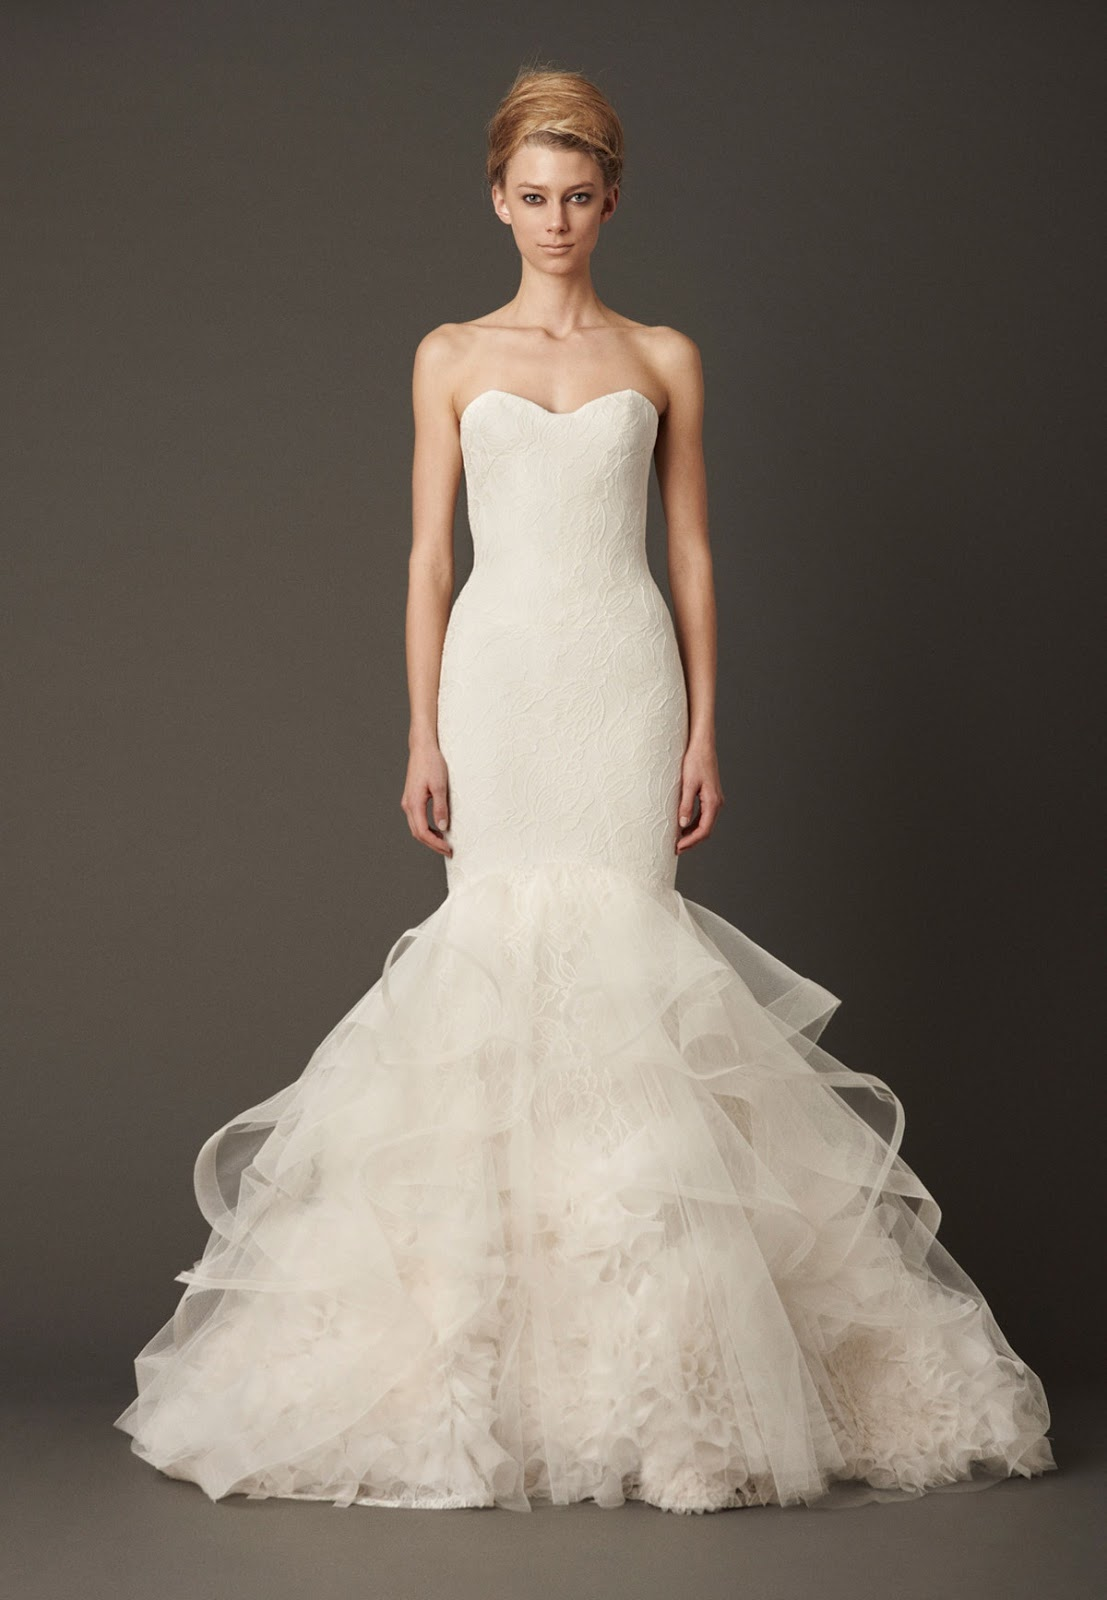 Vera wang 2013 fall bridal collection for Where to buy vera wang wedding dresses